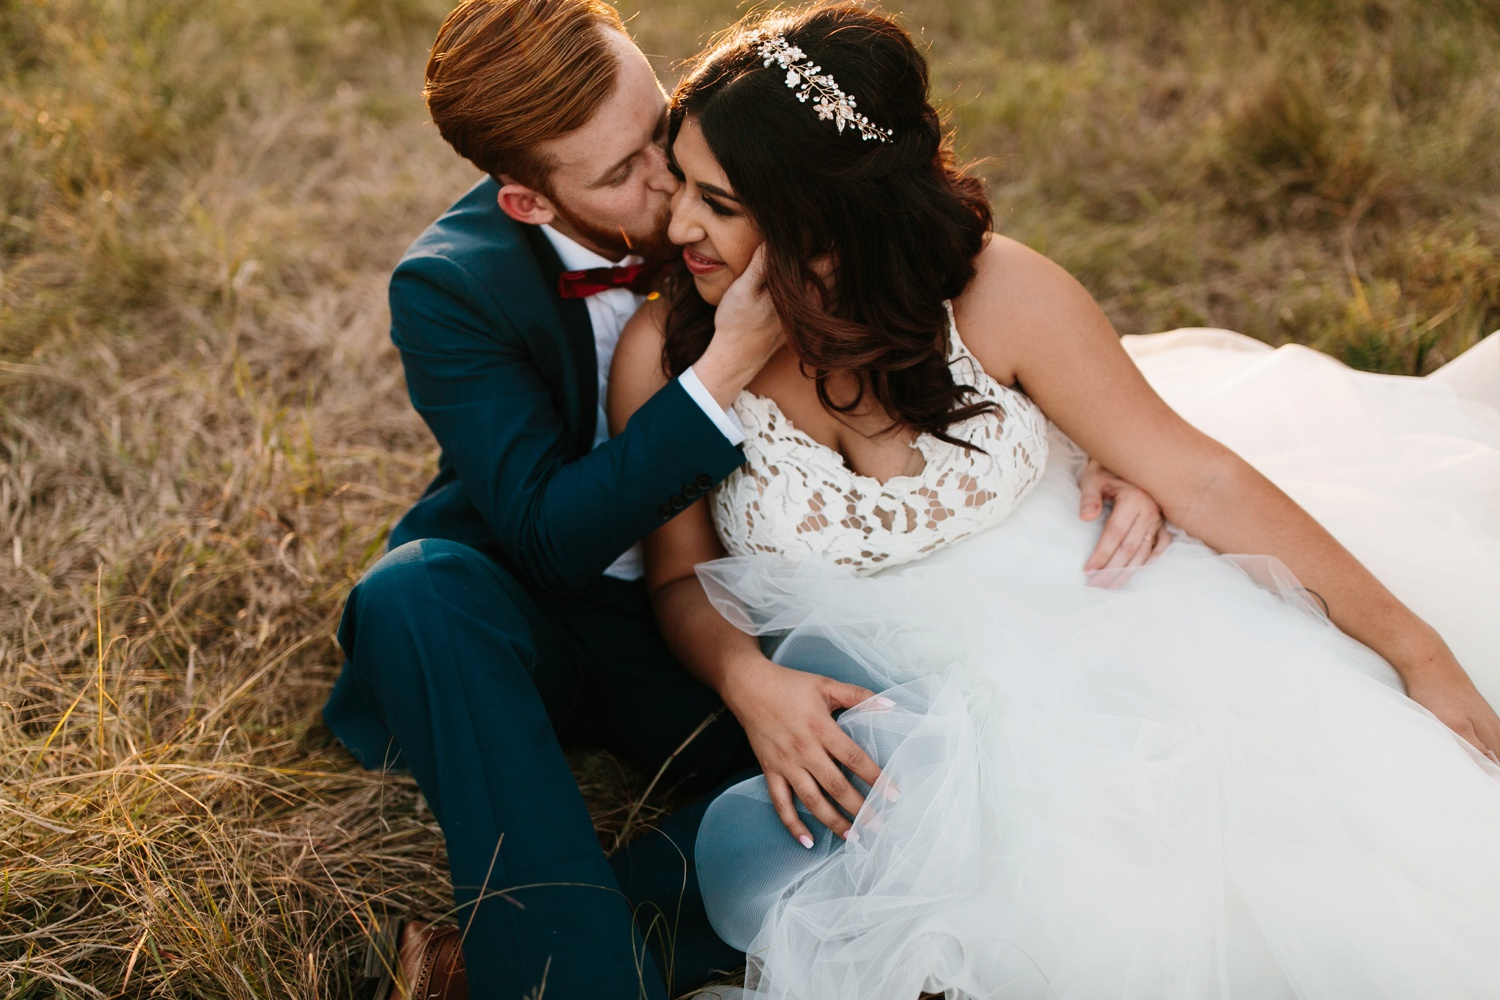 Grant + Lysette | a vibrant, deep burgundy and navy, and mixed metals wedding at Hidden Pines Chapel by North Texas Wedding Photographer Rachel Meagan Photography 231